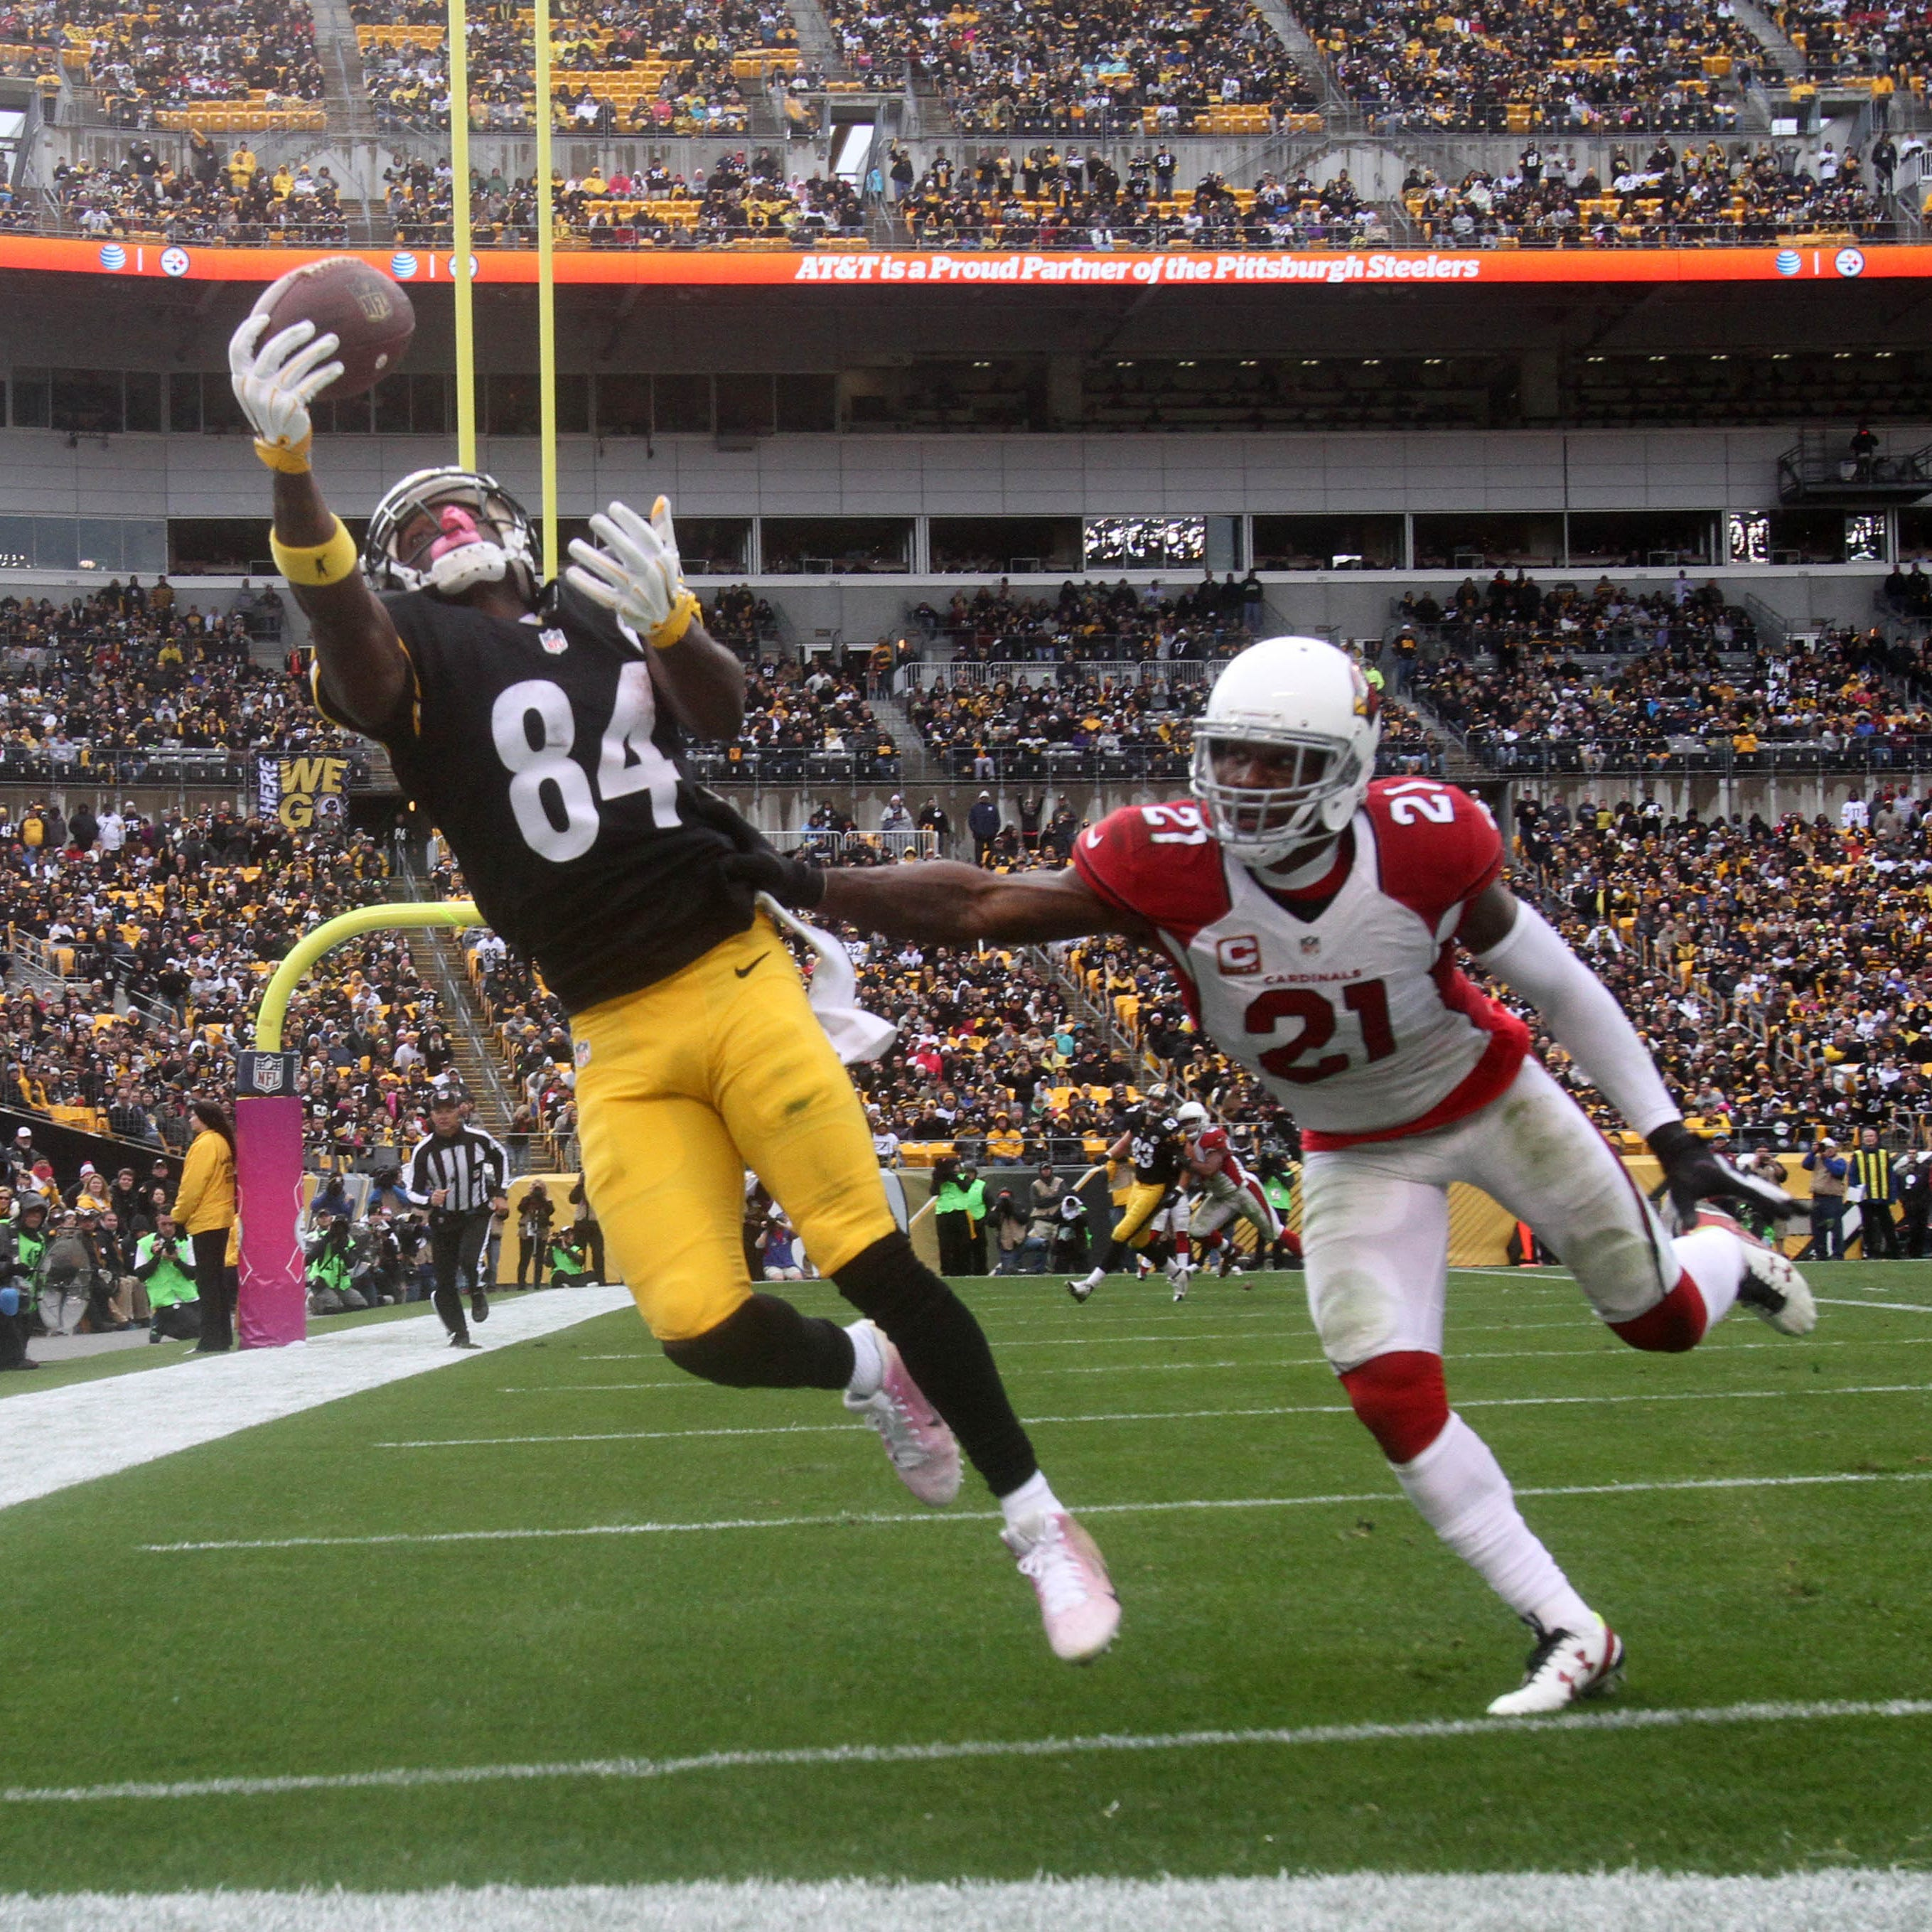 Antonio Brown to Cardinals? Trade speculation for Steelers wide receiver includes Arizona